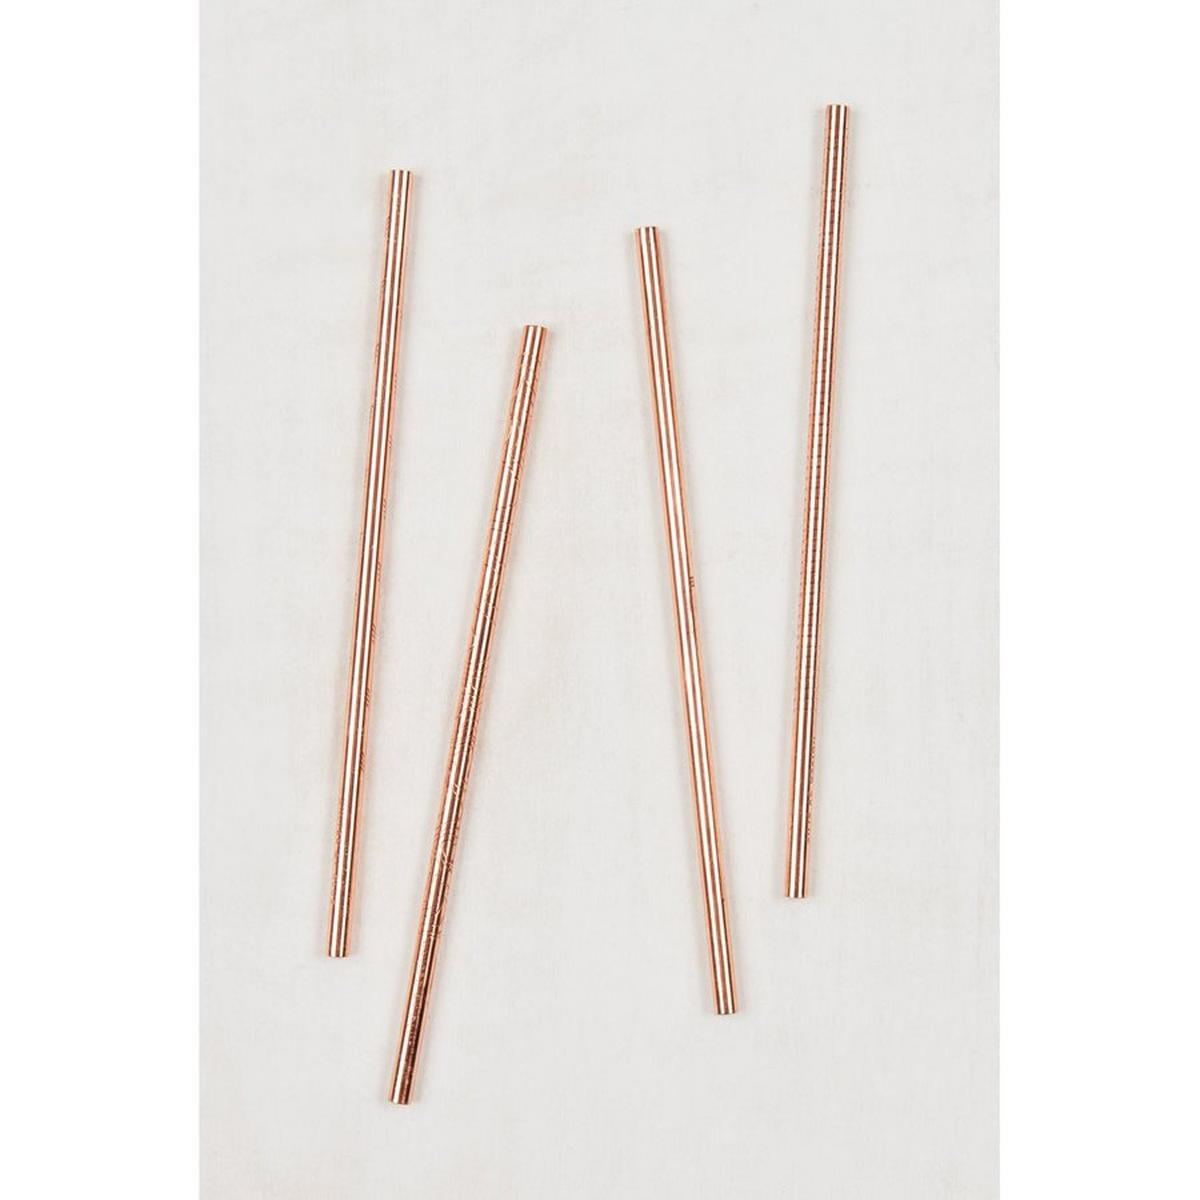 United By Blue Adventure Copper Straw Set of 4